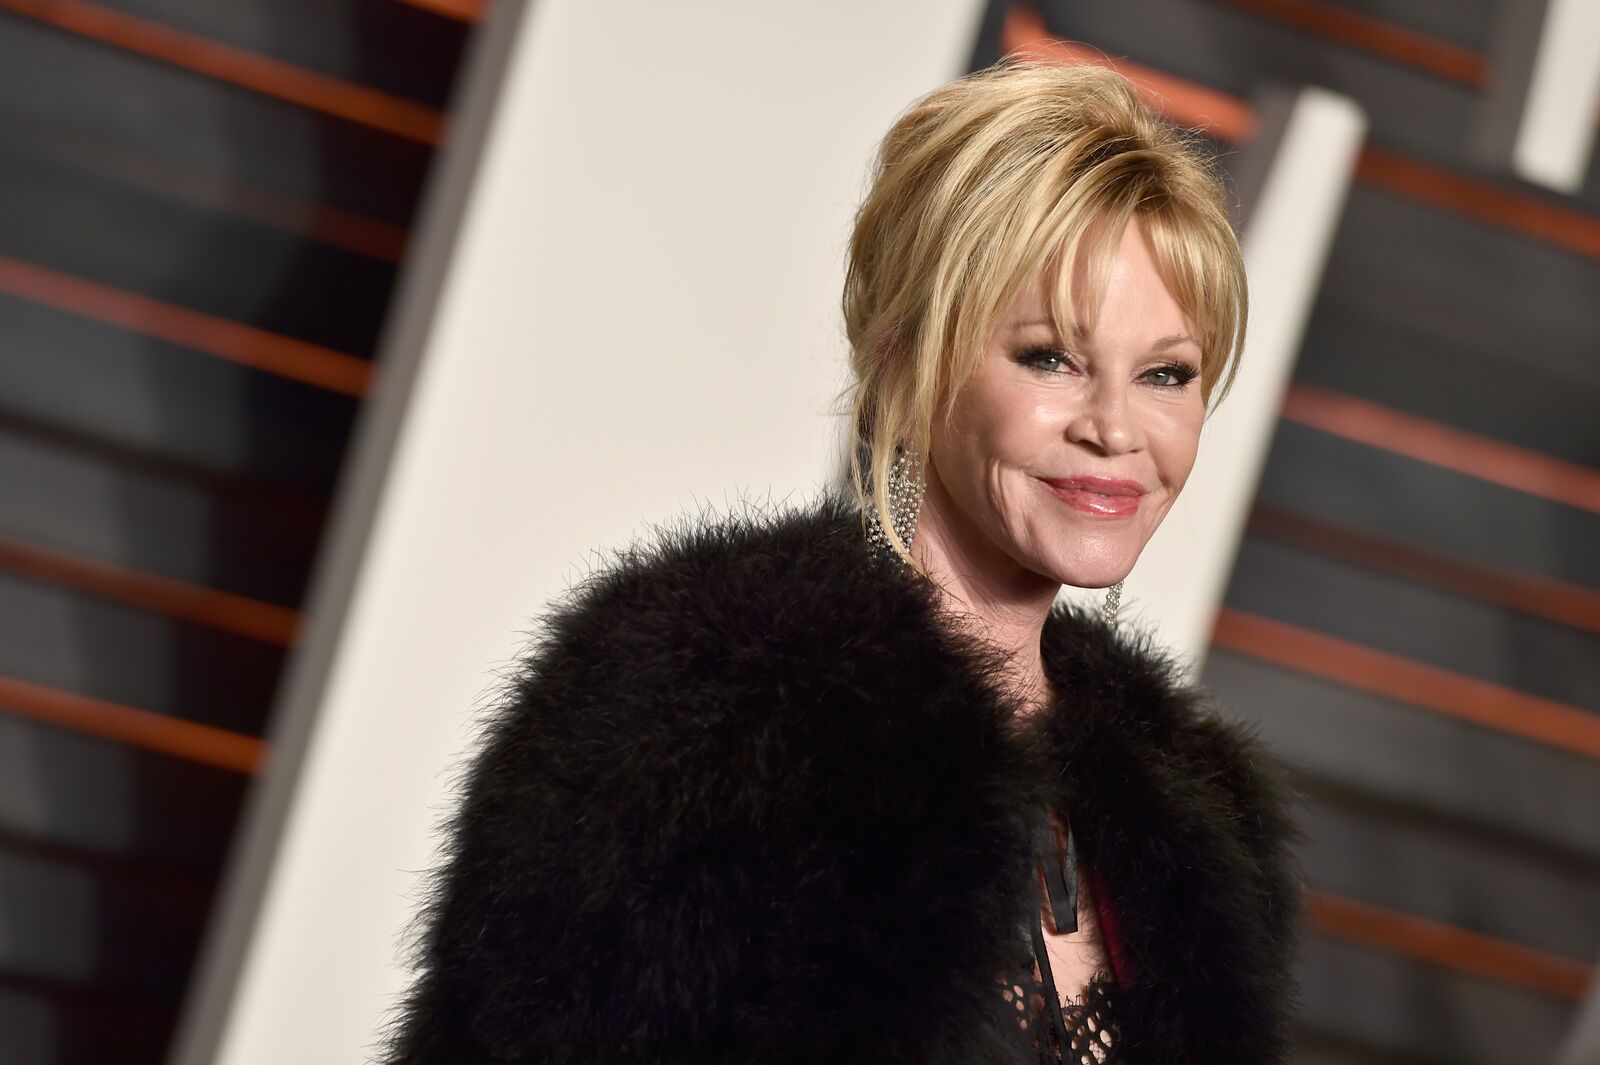 Actress Melanie Griffith attends the 2016 Vanity Fair Oscar Party Hosted By Graydon Carter at the Wallis Annenberg Center for the Performing Arts on February 28, 2016 in Beverly Hills, California | Photo: Getty Images